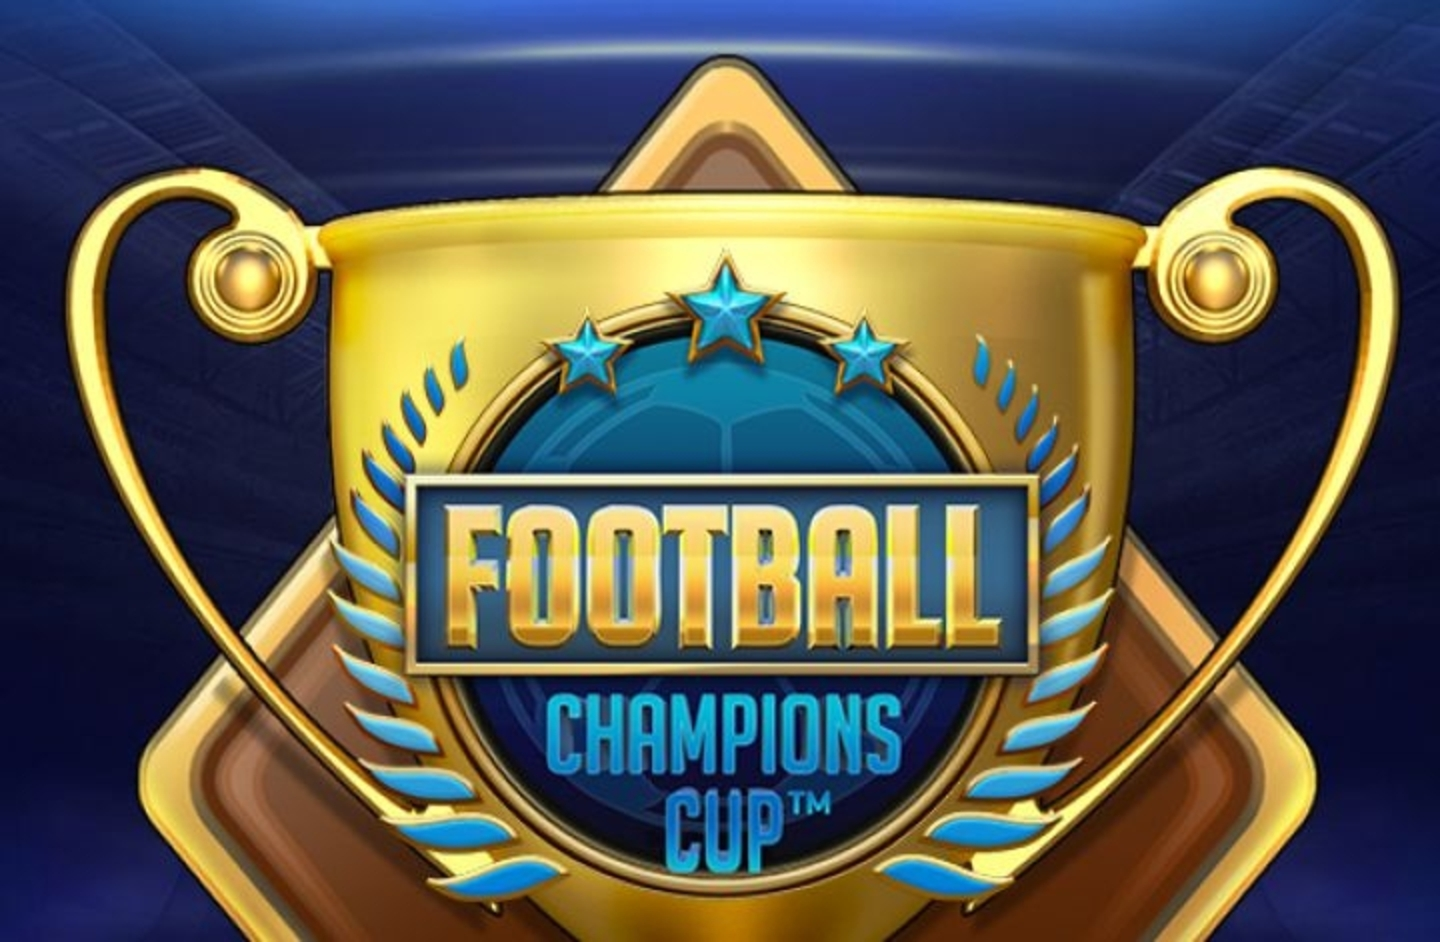 The Football: Champions Cup Online Slot Demo Game by NetEnt